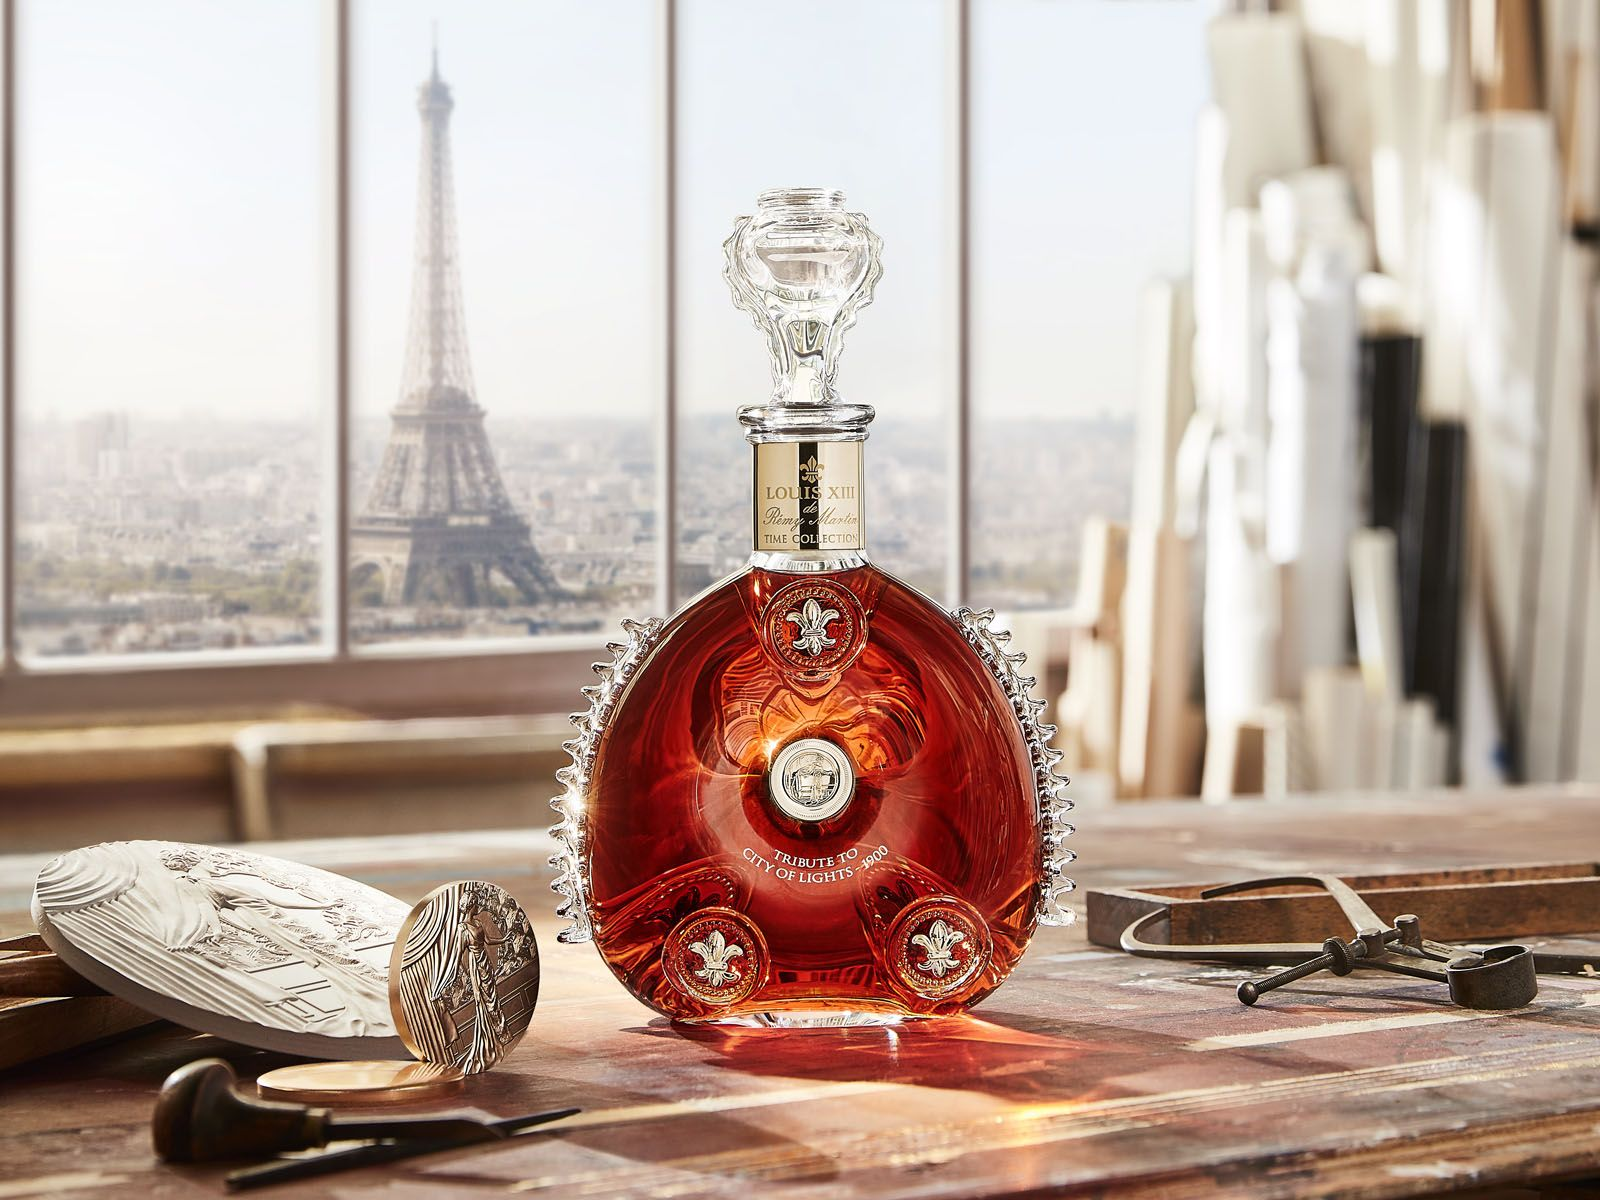 Louis XIII Cognac Pays Tribute to Paris in the 1900s with a Limited-Edition Time Collection